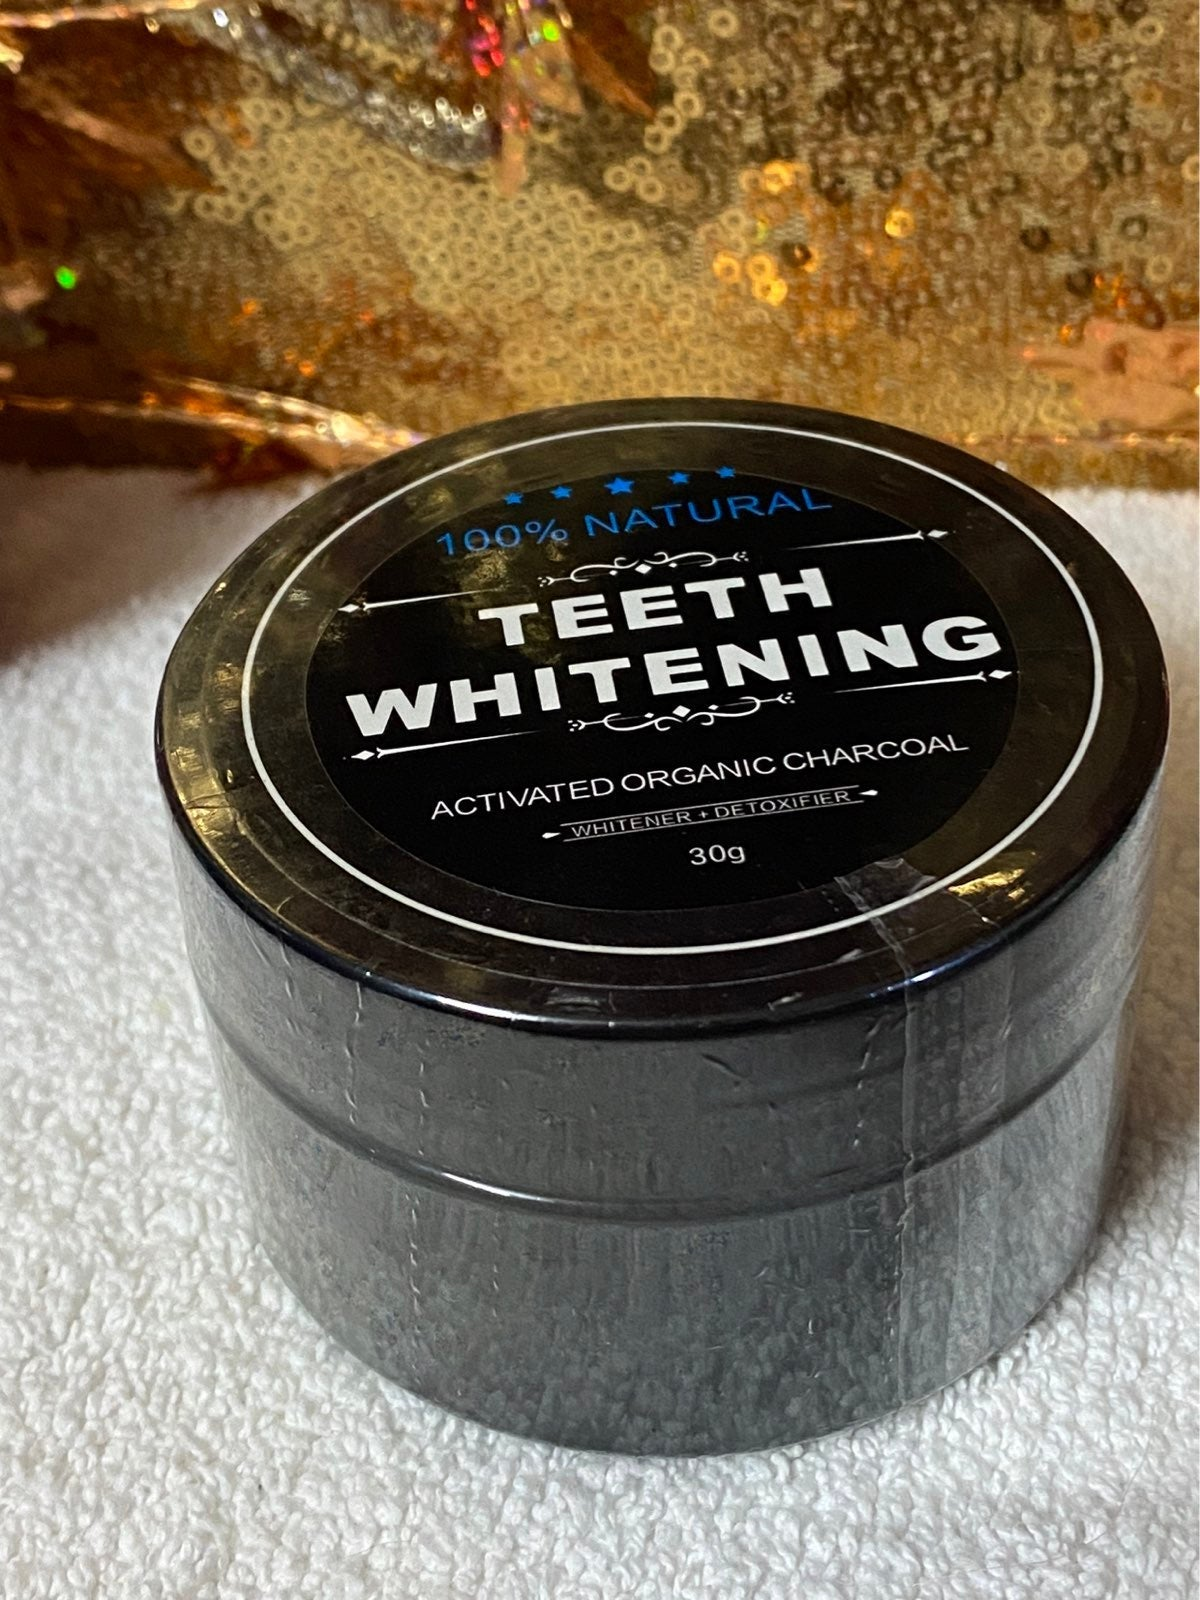 teeth whitening organic charcoal